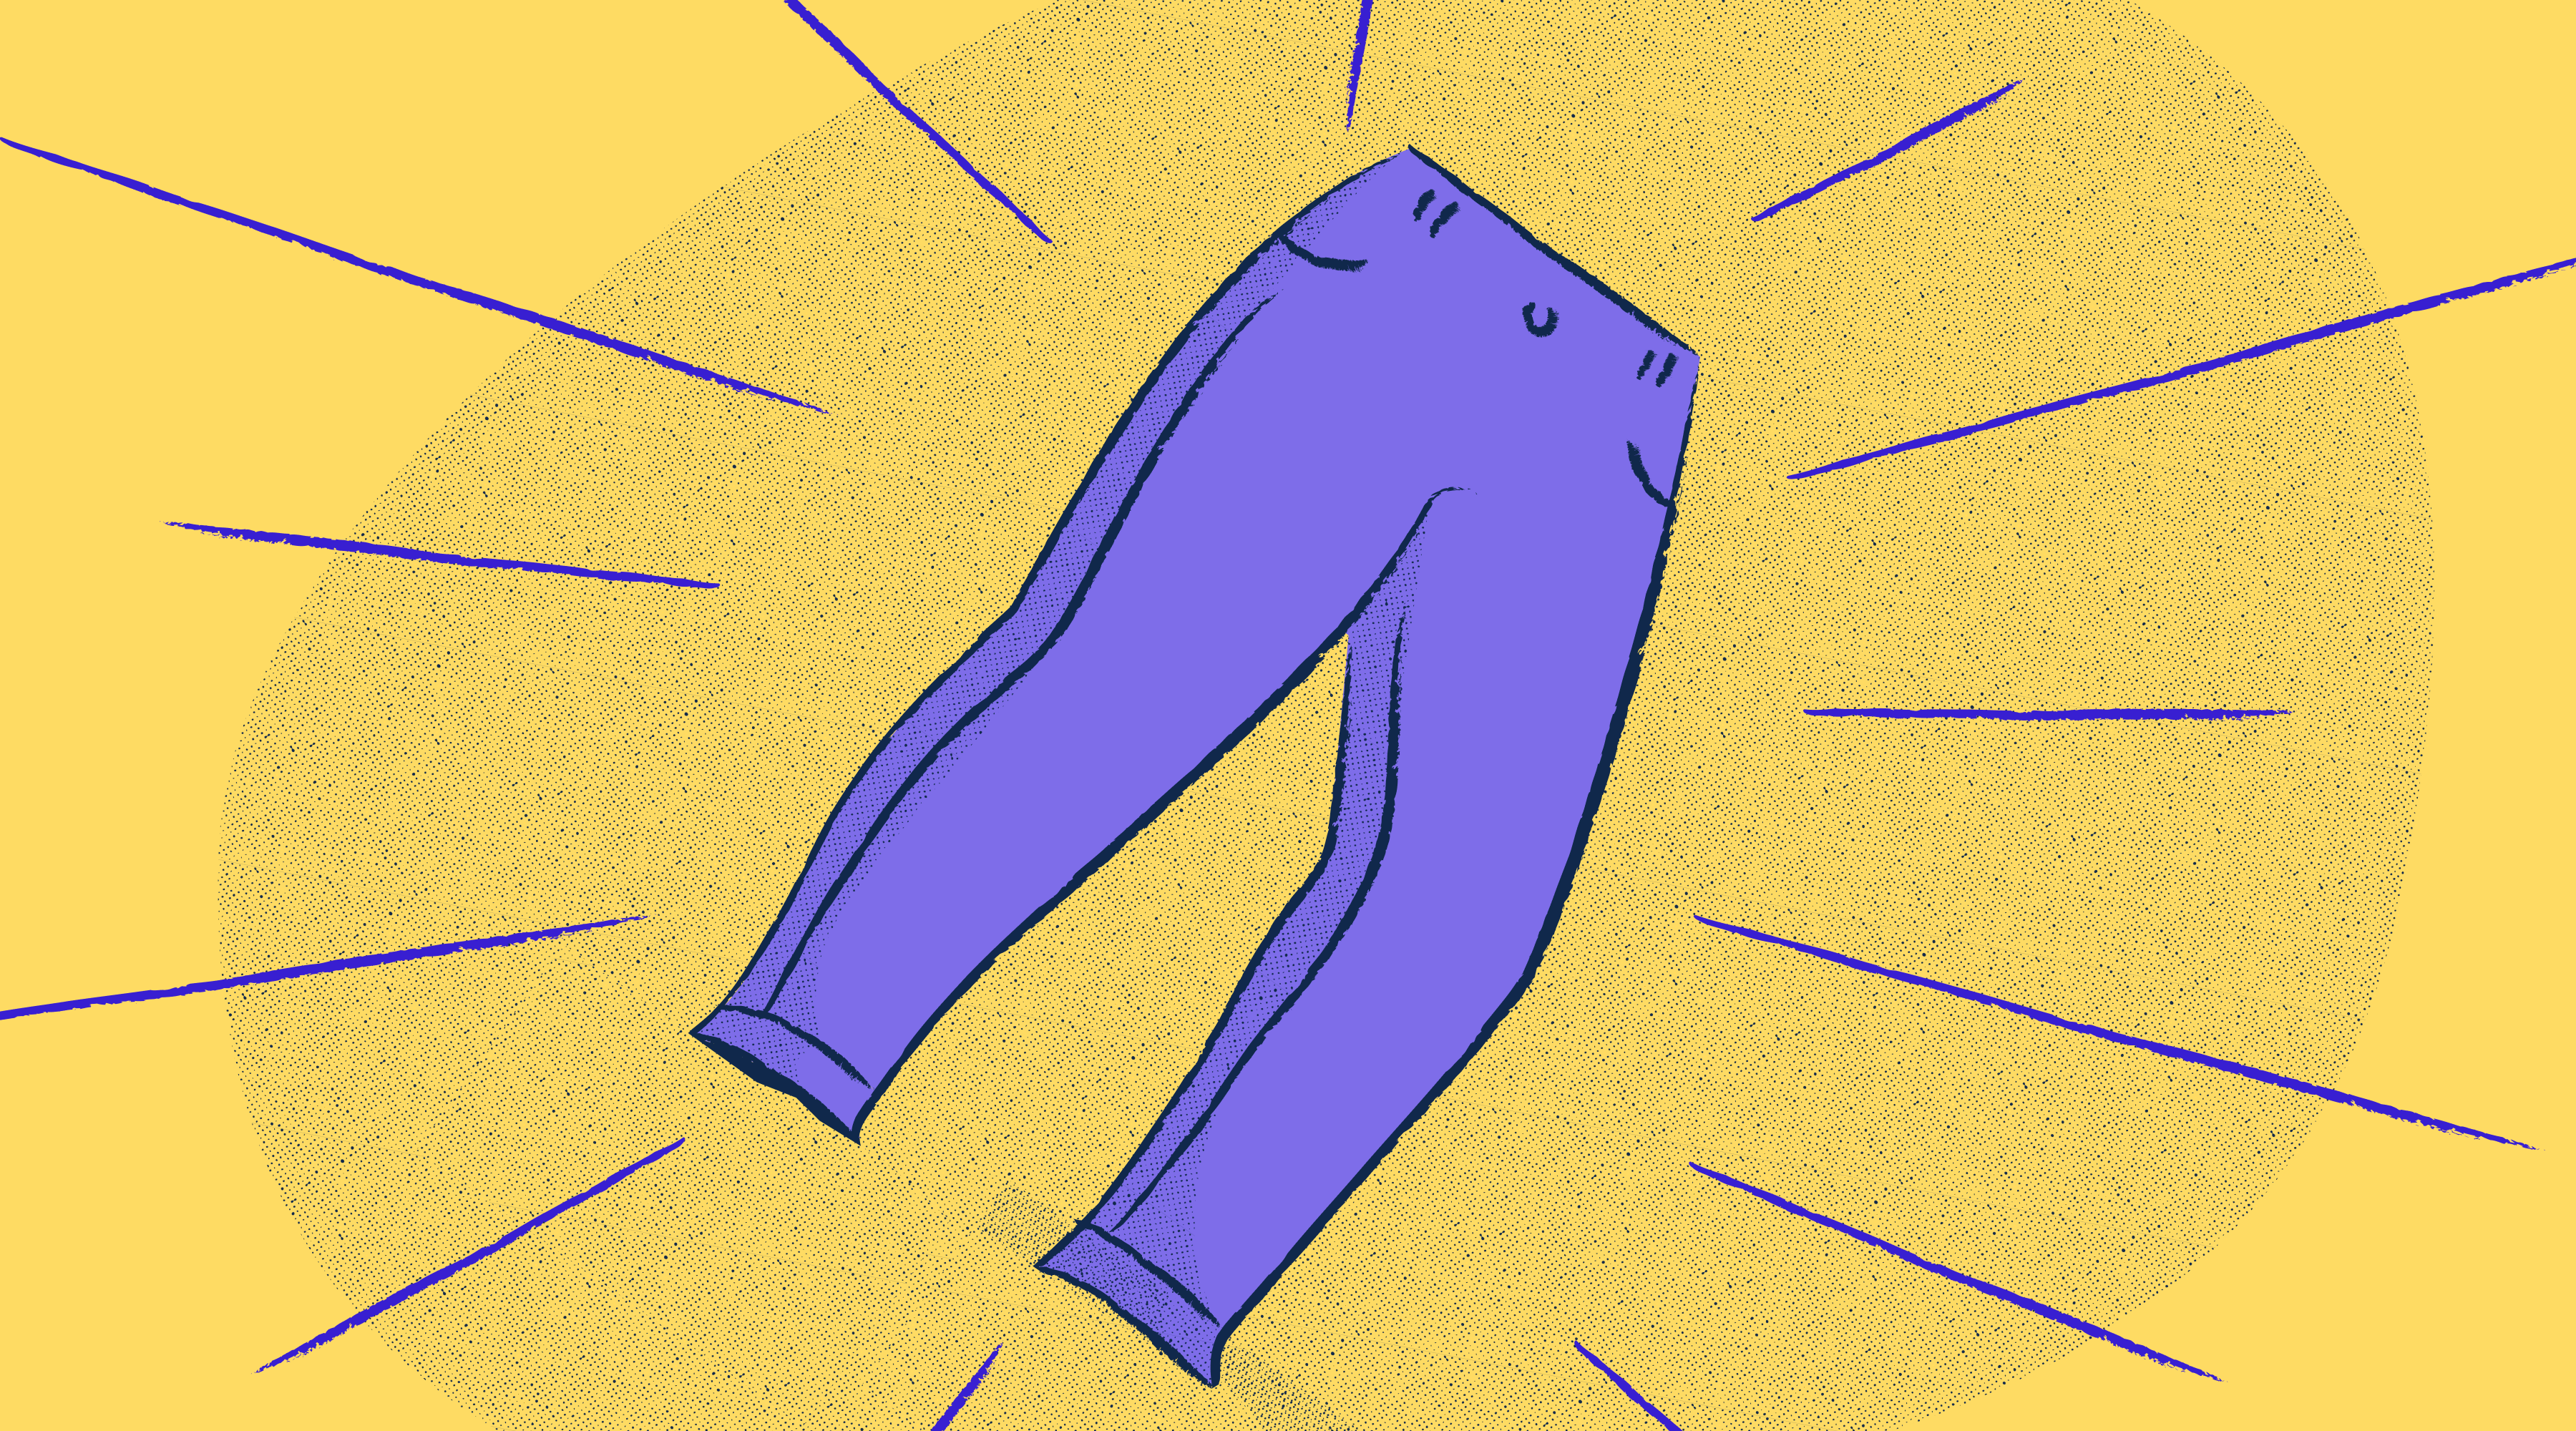 Flying purple pants against a yellow background.